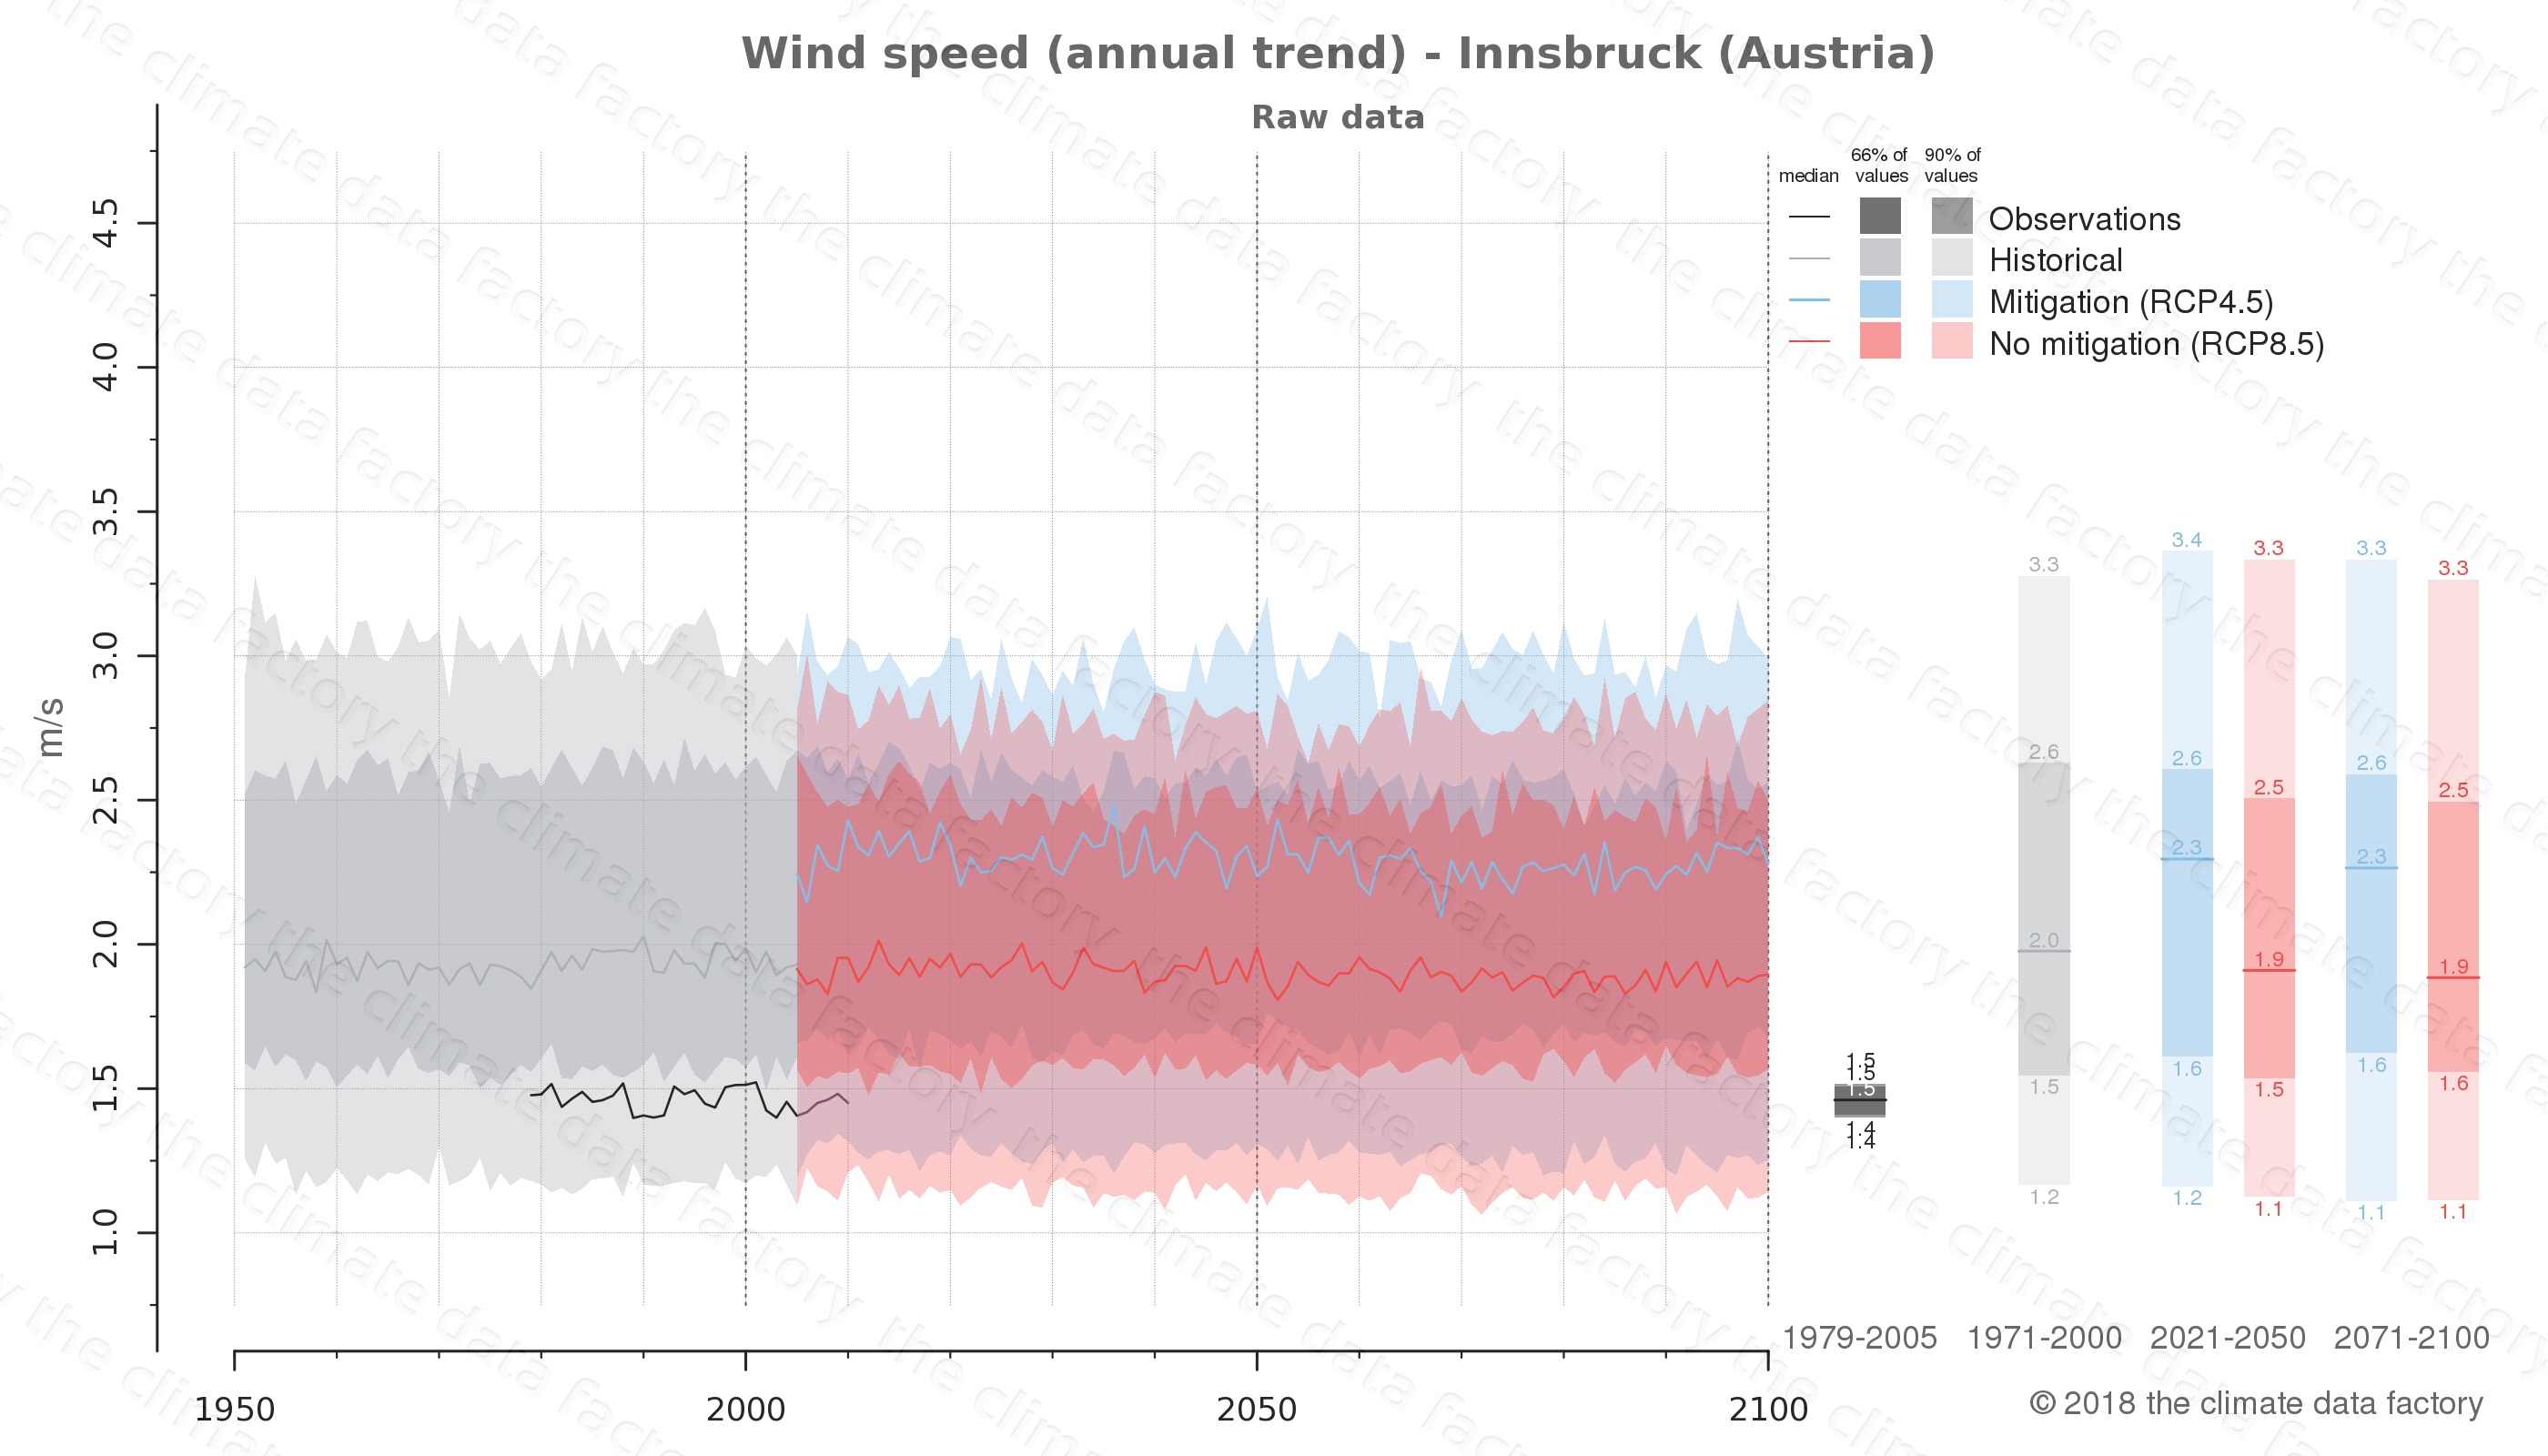 climate change data policy adaptation climate graph city data wind-speed innsbruck austria